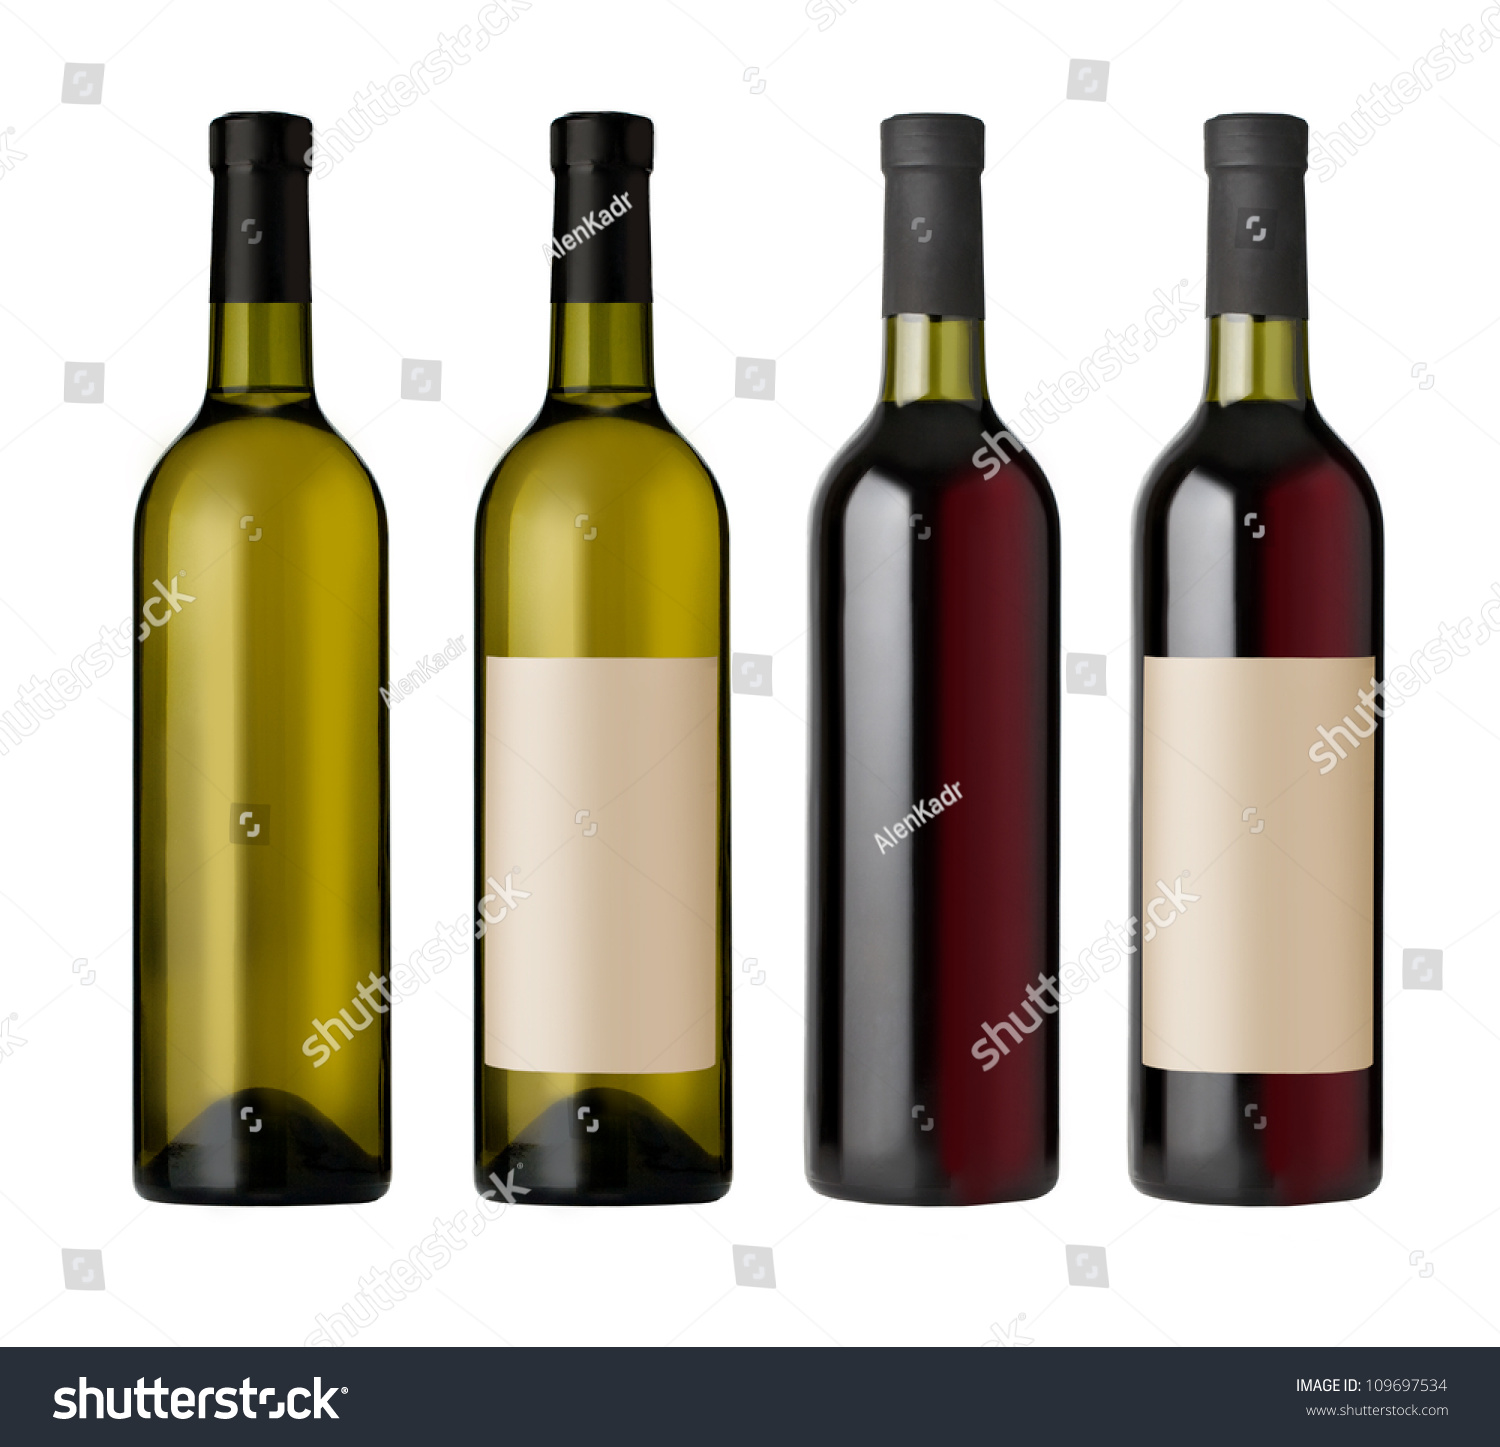 Two Red White Wine Bottles Blank Stock Photo 109697534 ...